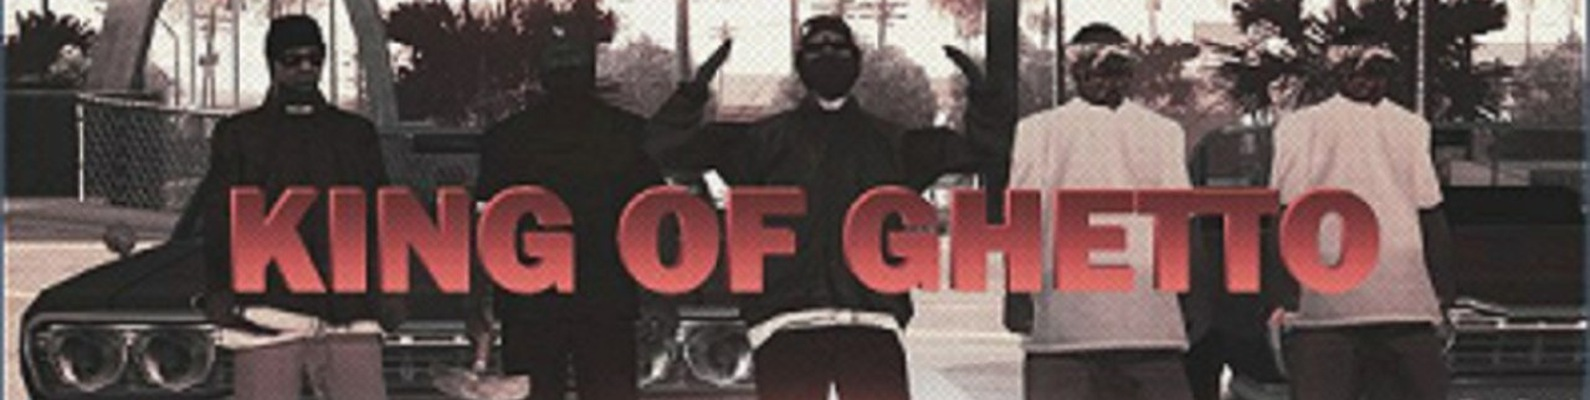 the exploration of the ghetto and characters in the motion picture belly The motion picture production code and us law restricted real, unsimulated intimate encounters in movies until the 1960s when mainstream cinemas began pushing boundaries in terms of what was presented on screen.